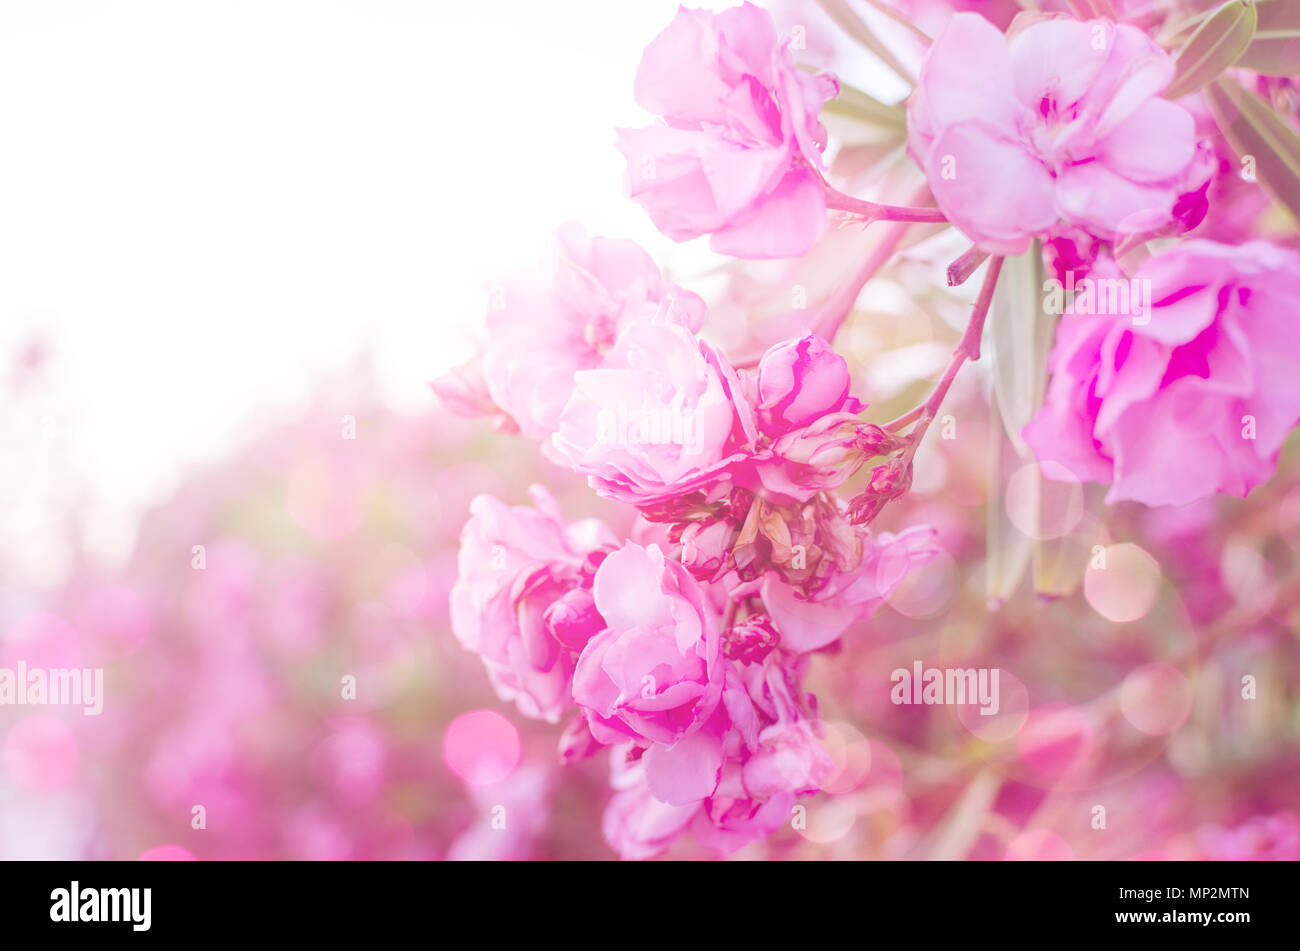 Pink Flowers On Soft Pastel Color In Blur Style Spring Border Or